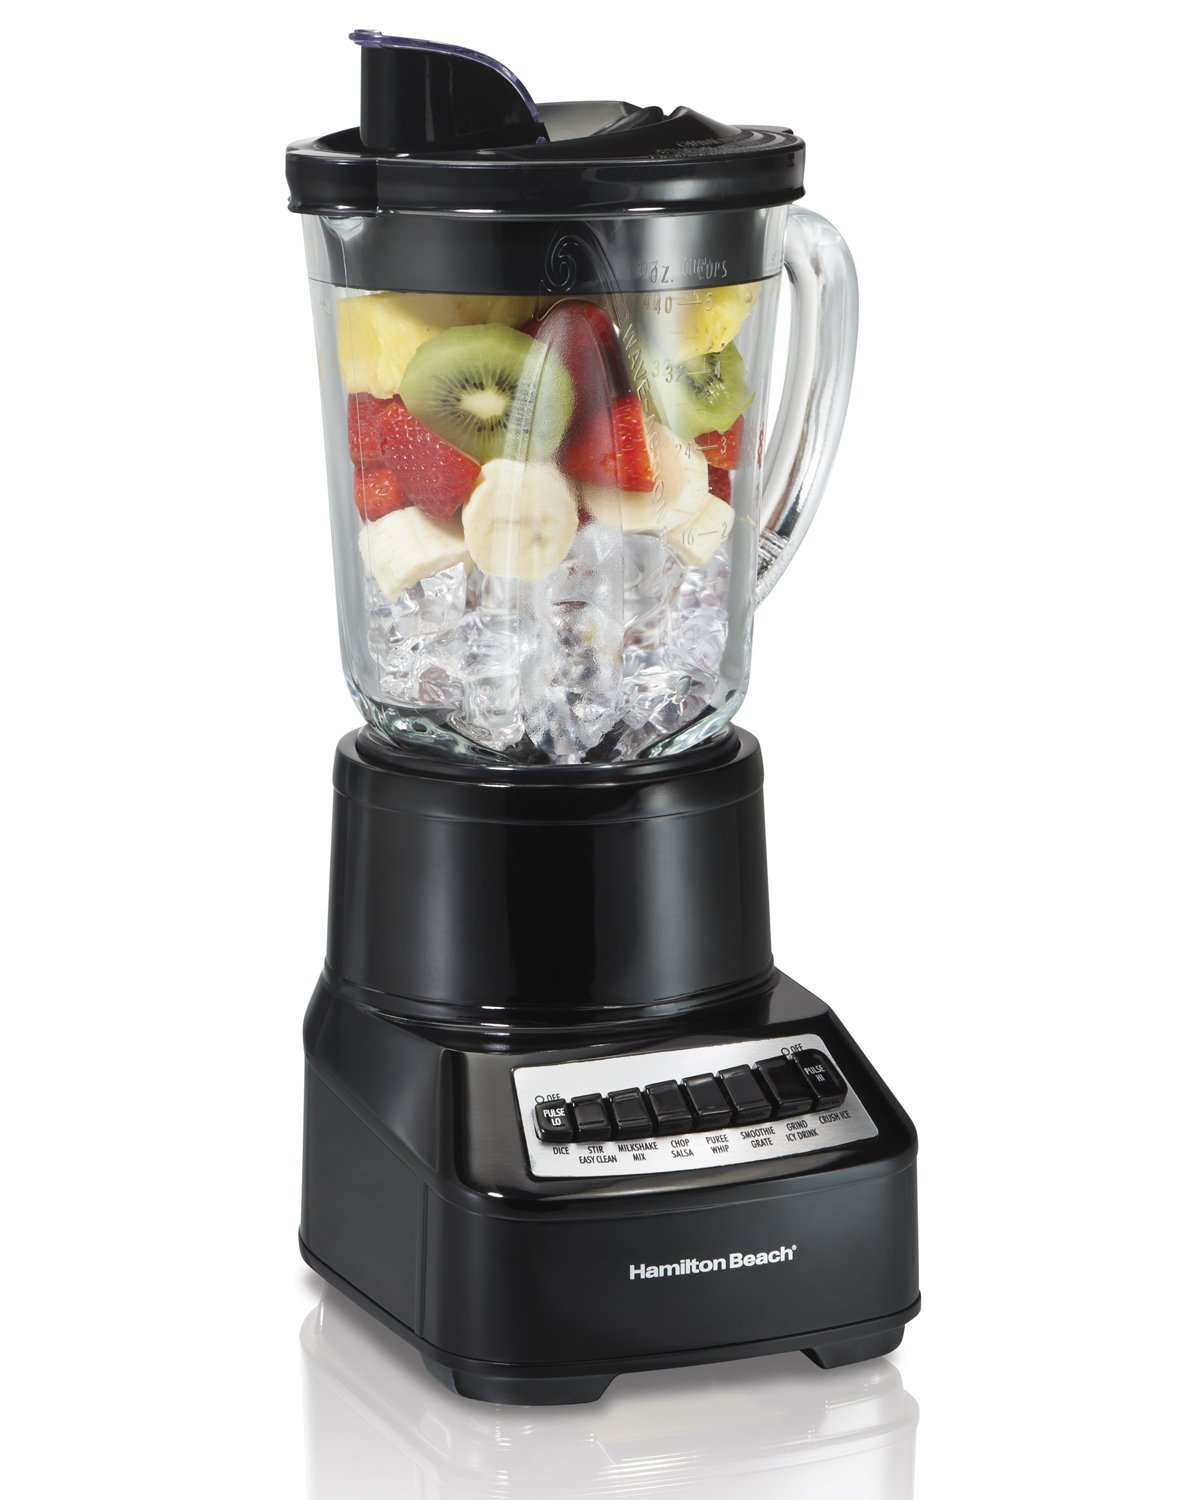 Hamilton Beach Wave Crusher Blender Under $100